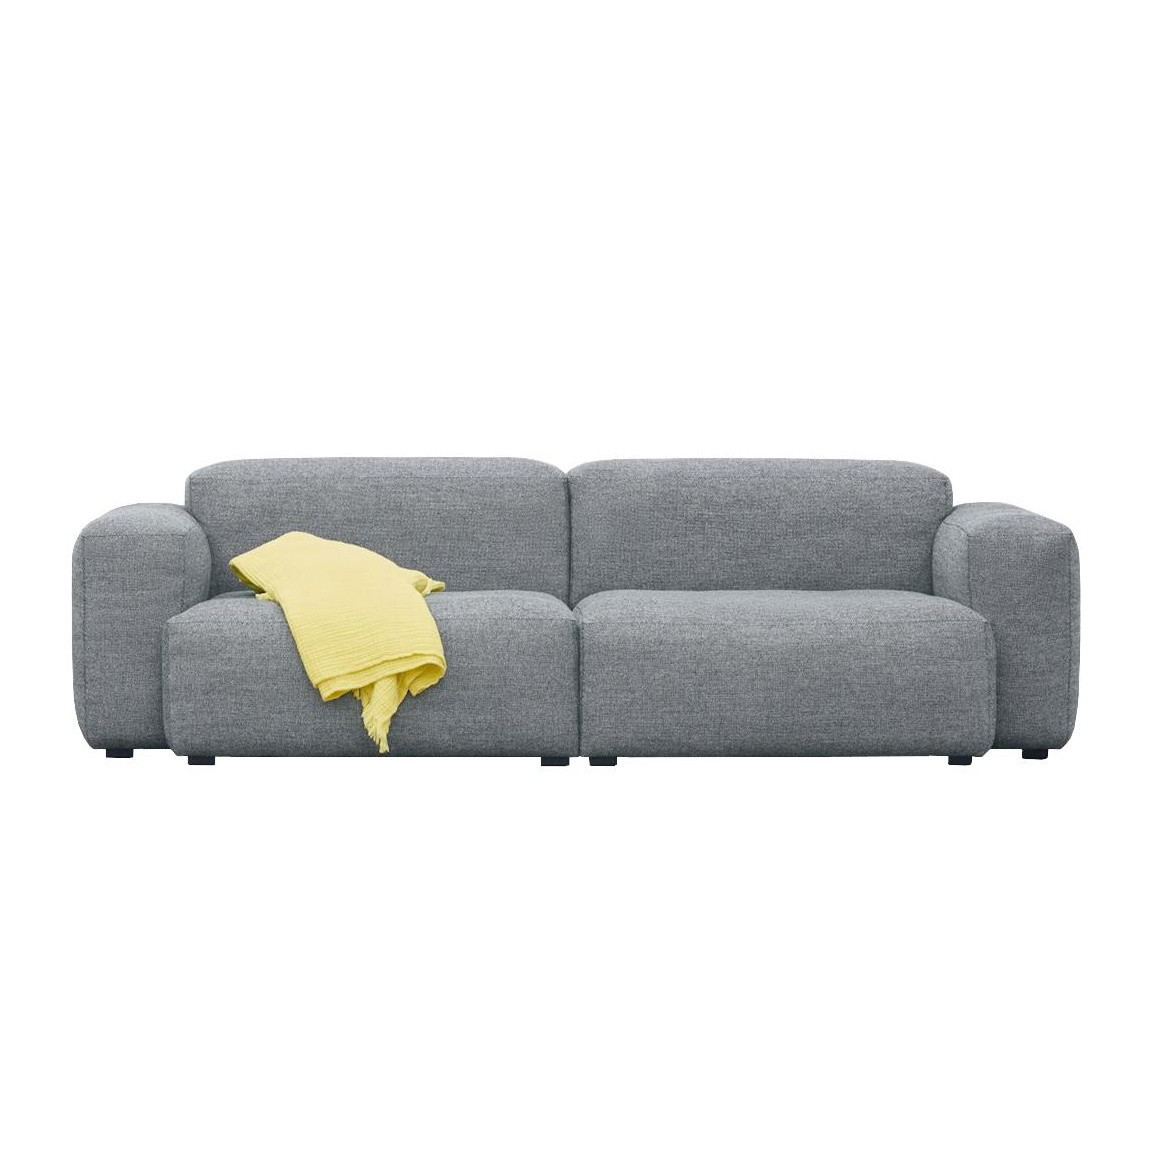 mags soft 2 5 seater sofa low armrest